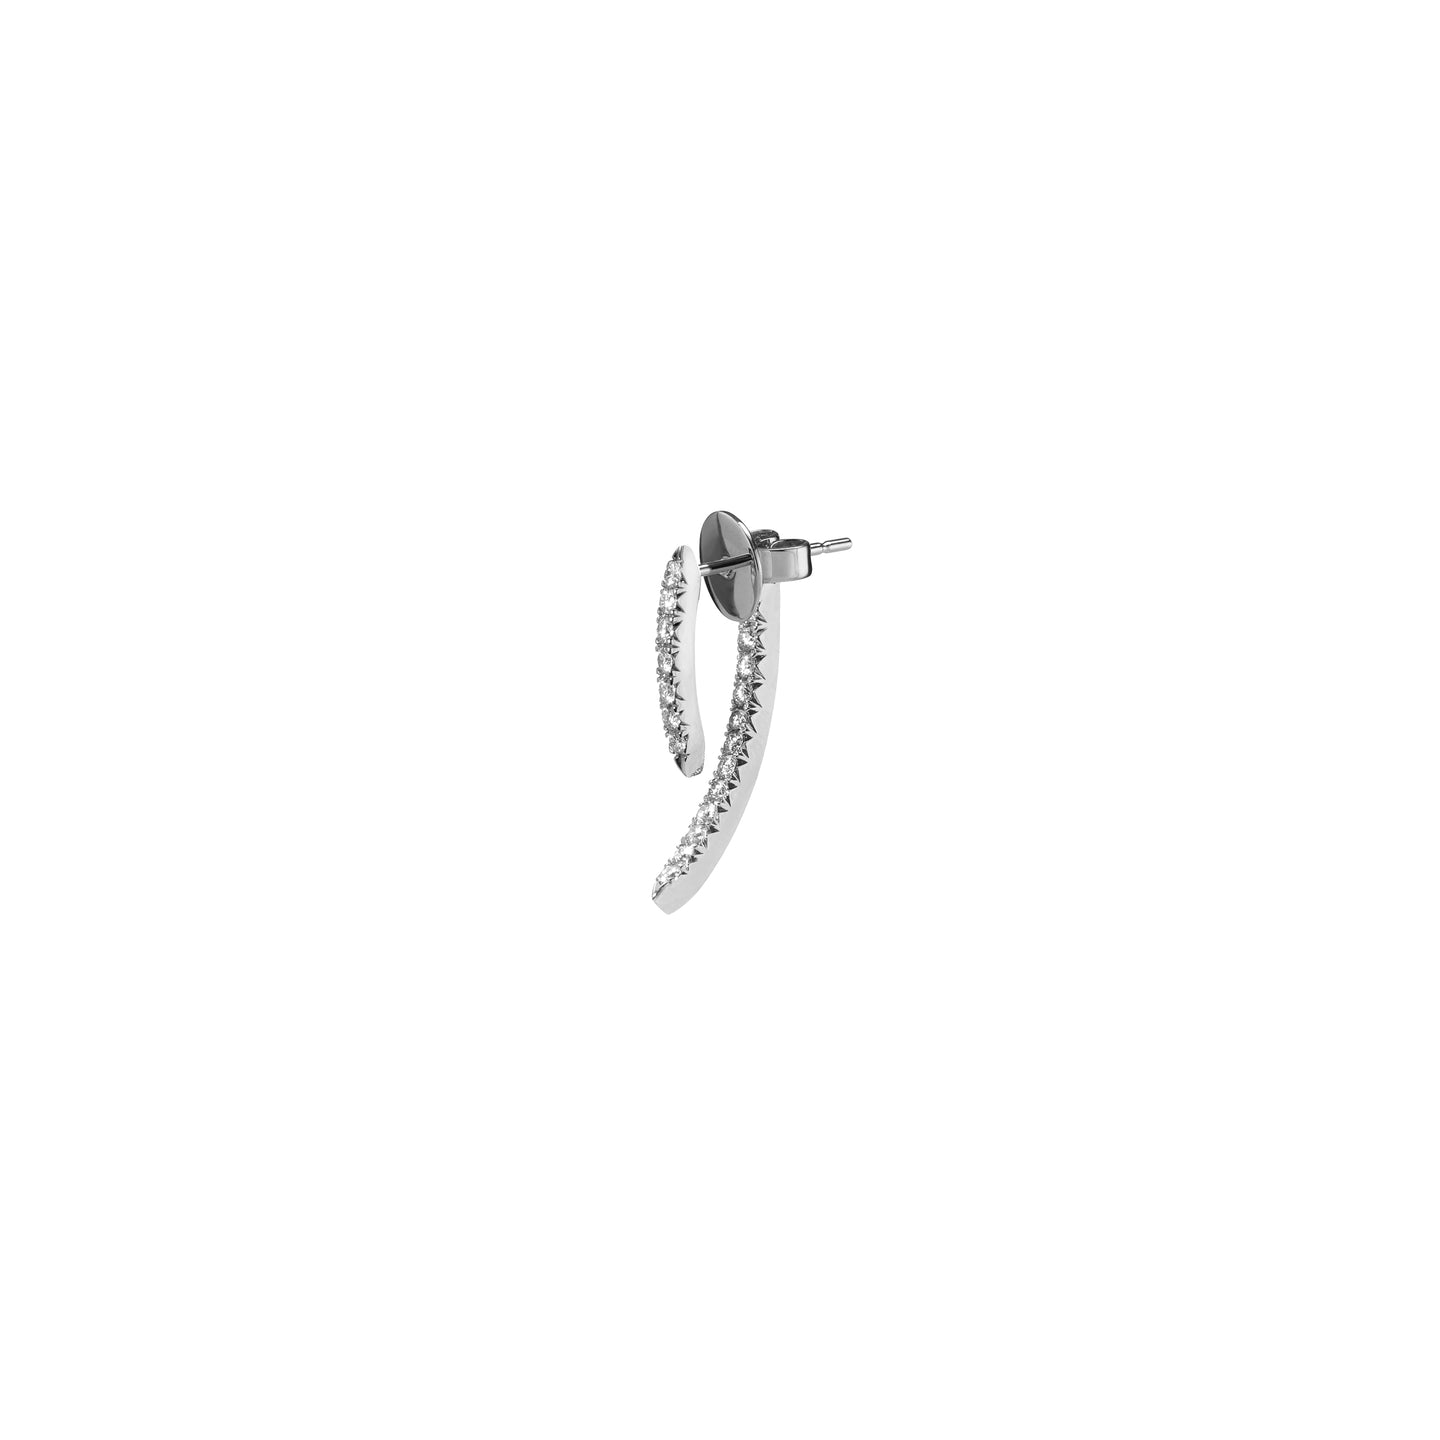 SINGLE MINI CLAW PIN TUSK EARRING WITH PAVE WHITE DIAMONDS